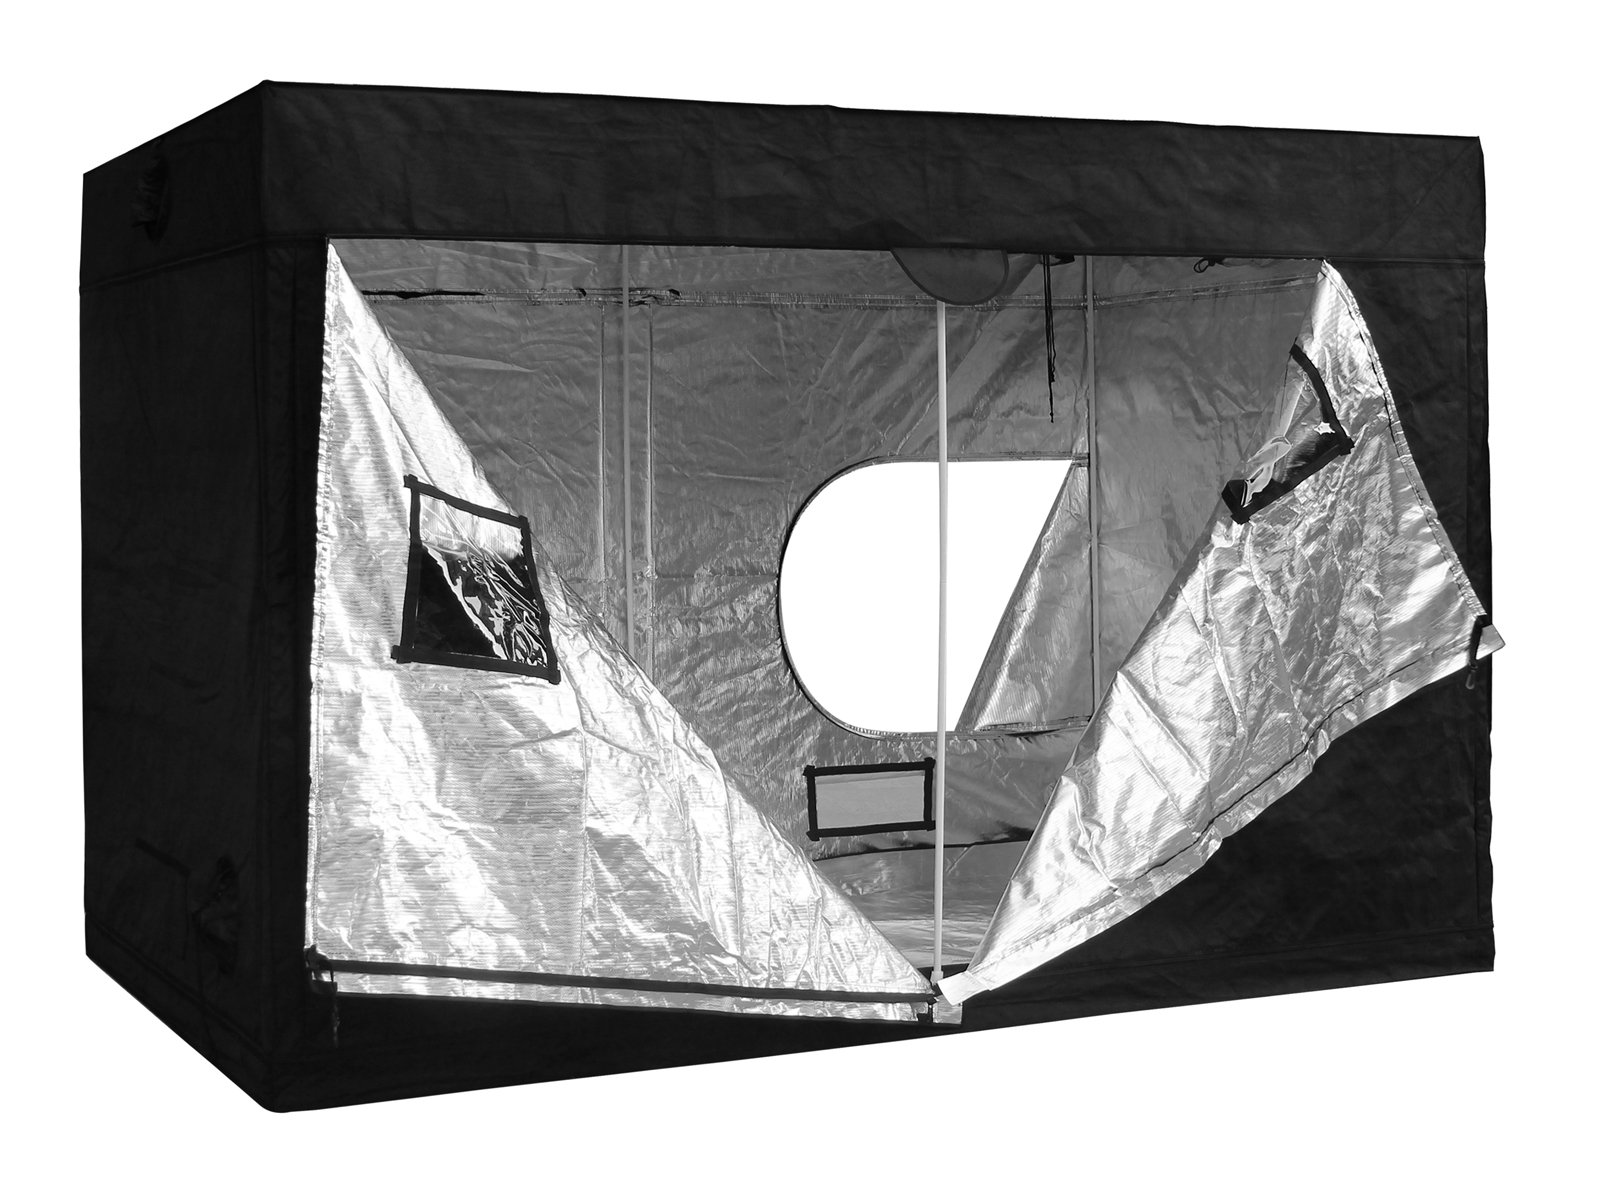 118x60x78'' Indoor Grow Tent Room Reflective Mylar Hydroponic Non Toxic Hut 600D 10x5x6.5FT HX-0011878-PT1